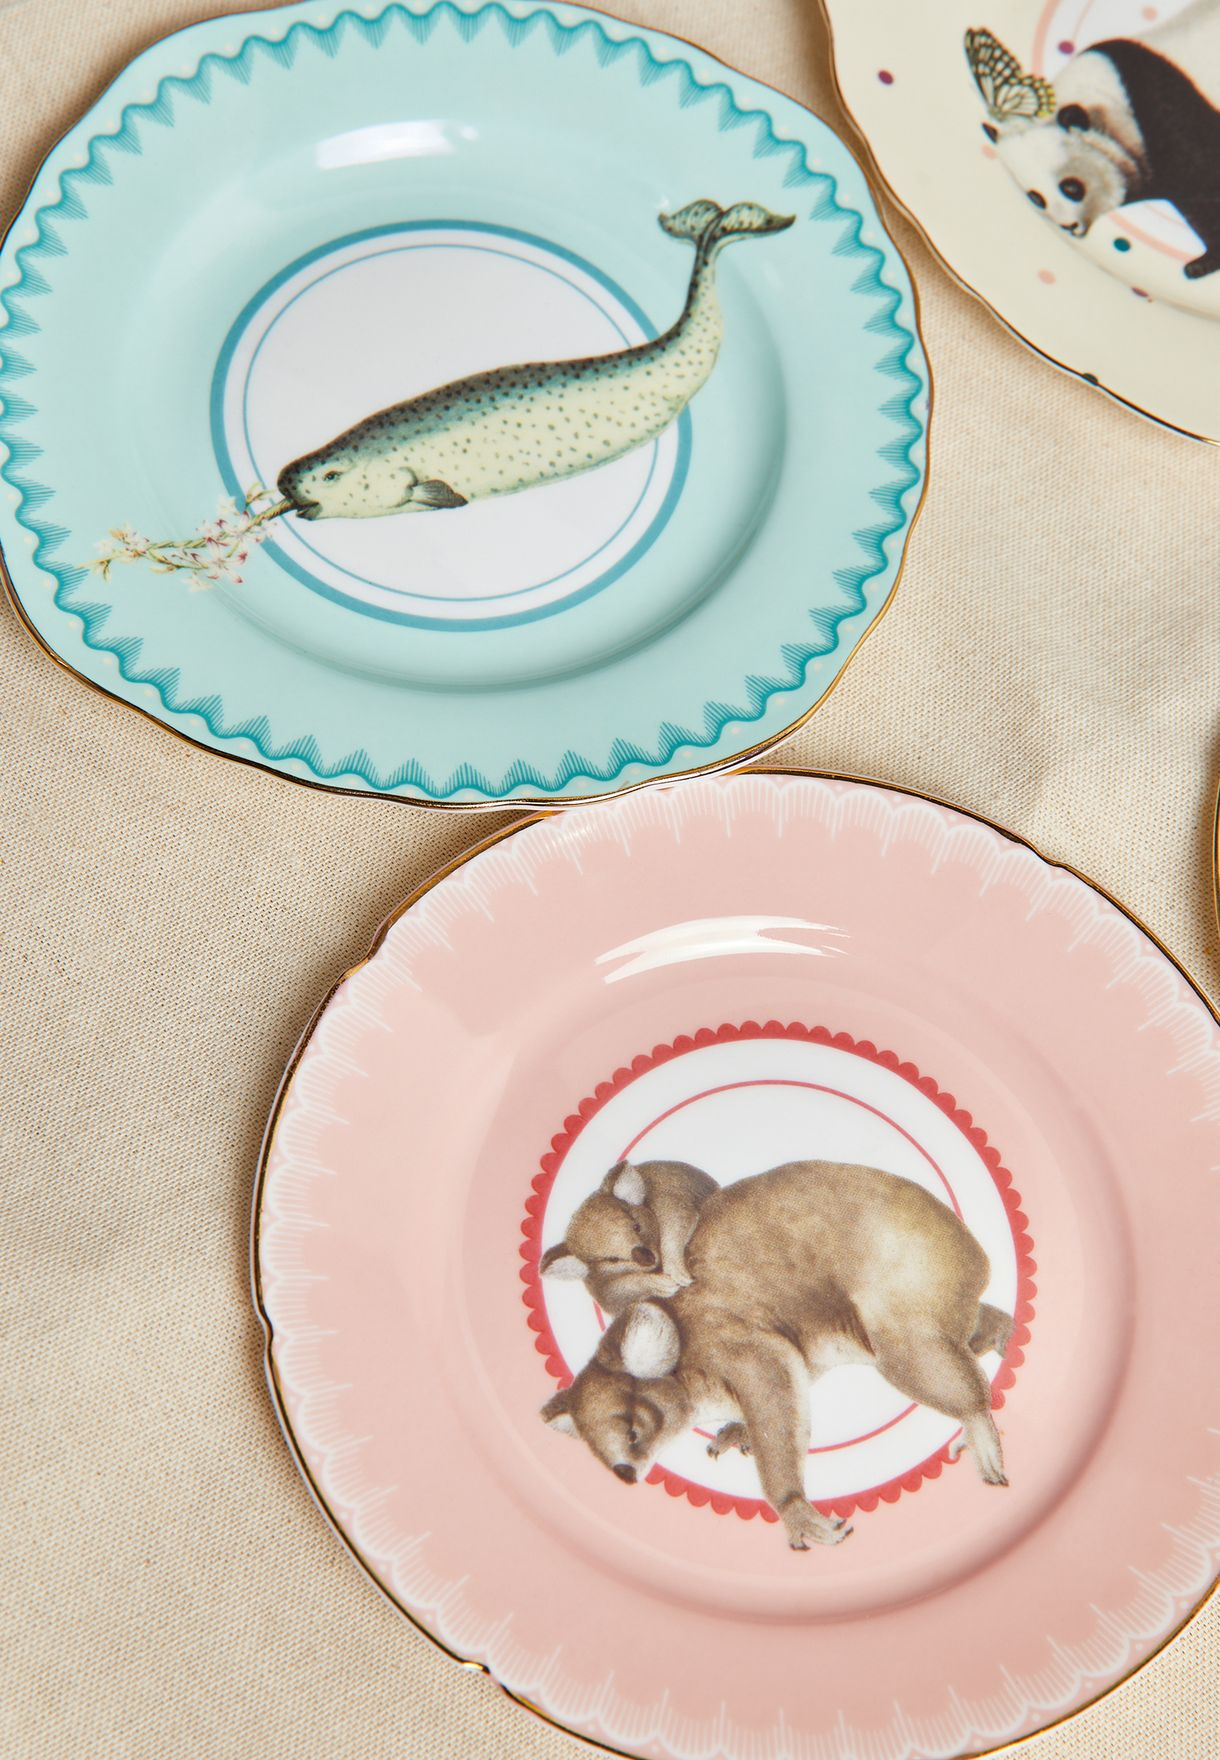 4 Pcs Animal Cake Plates Set